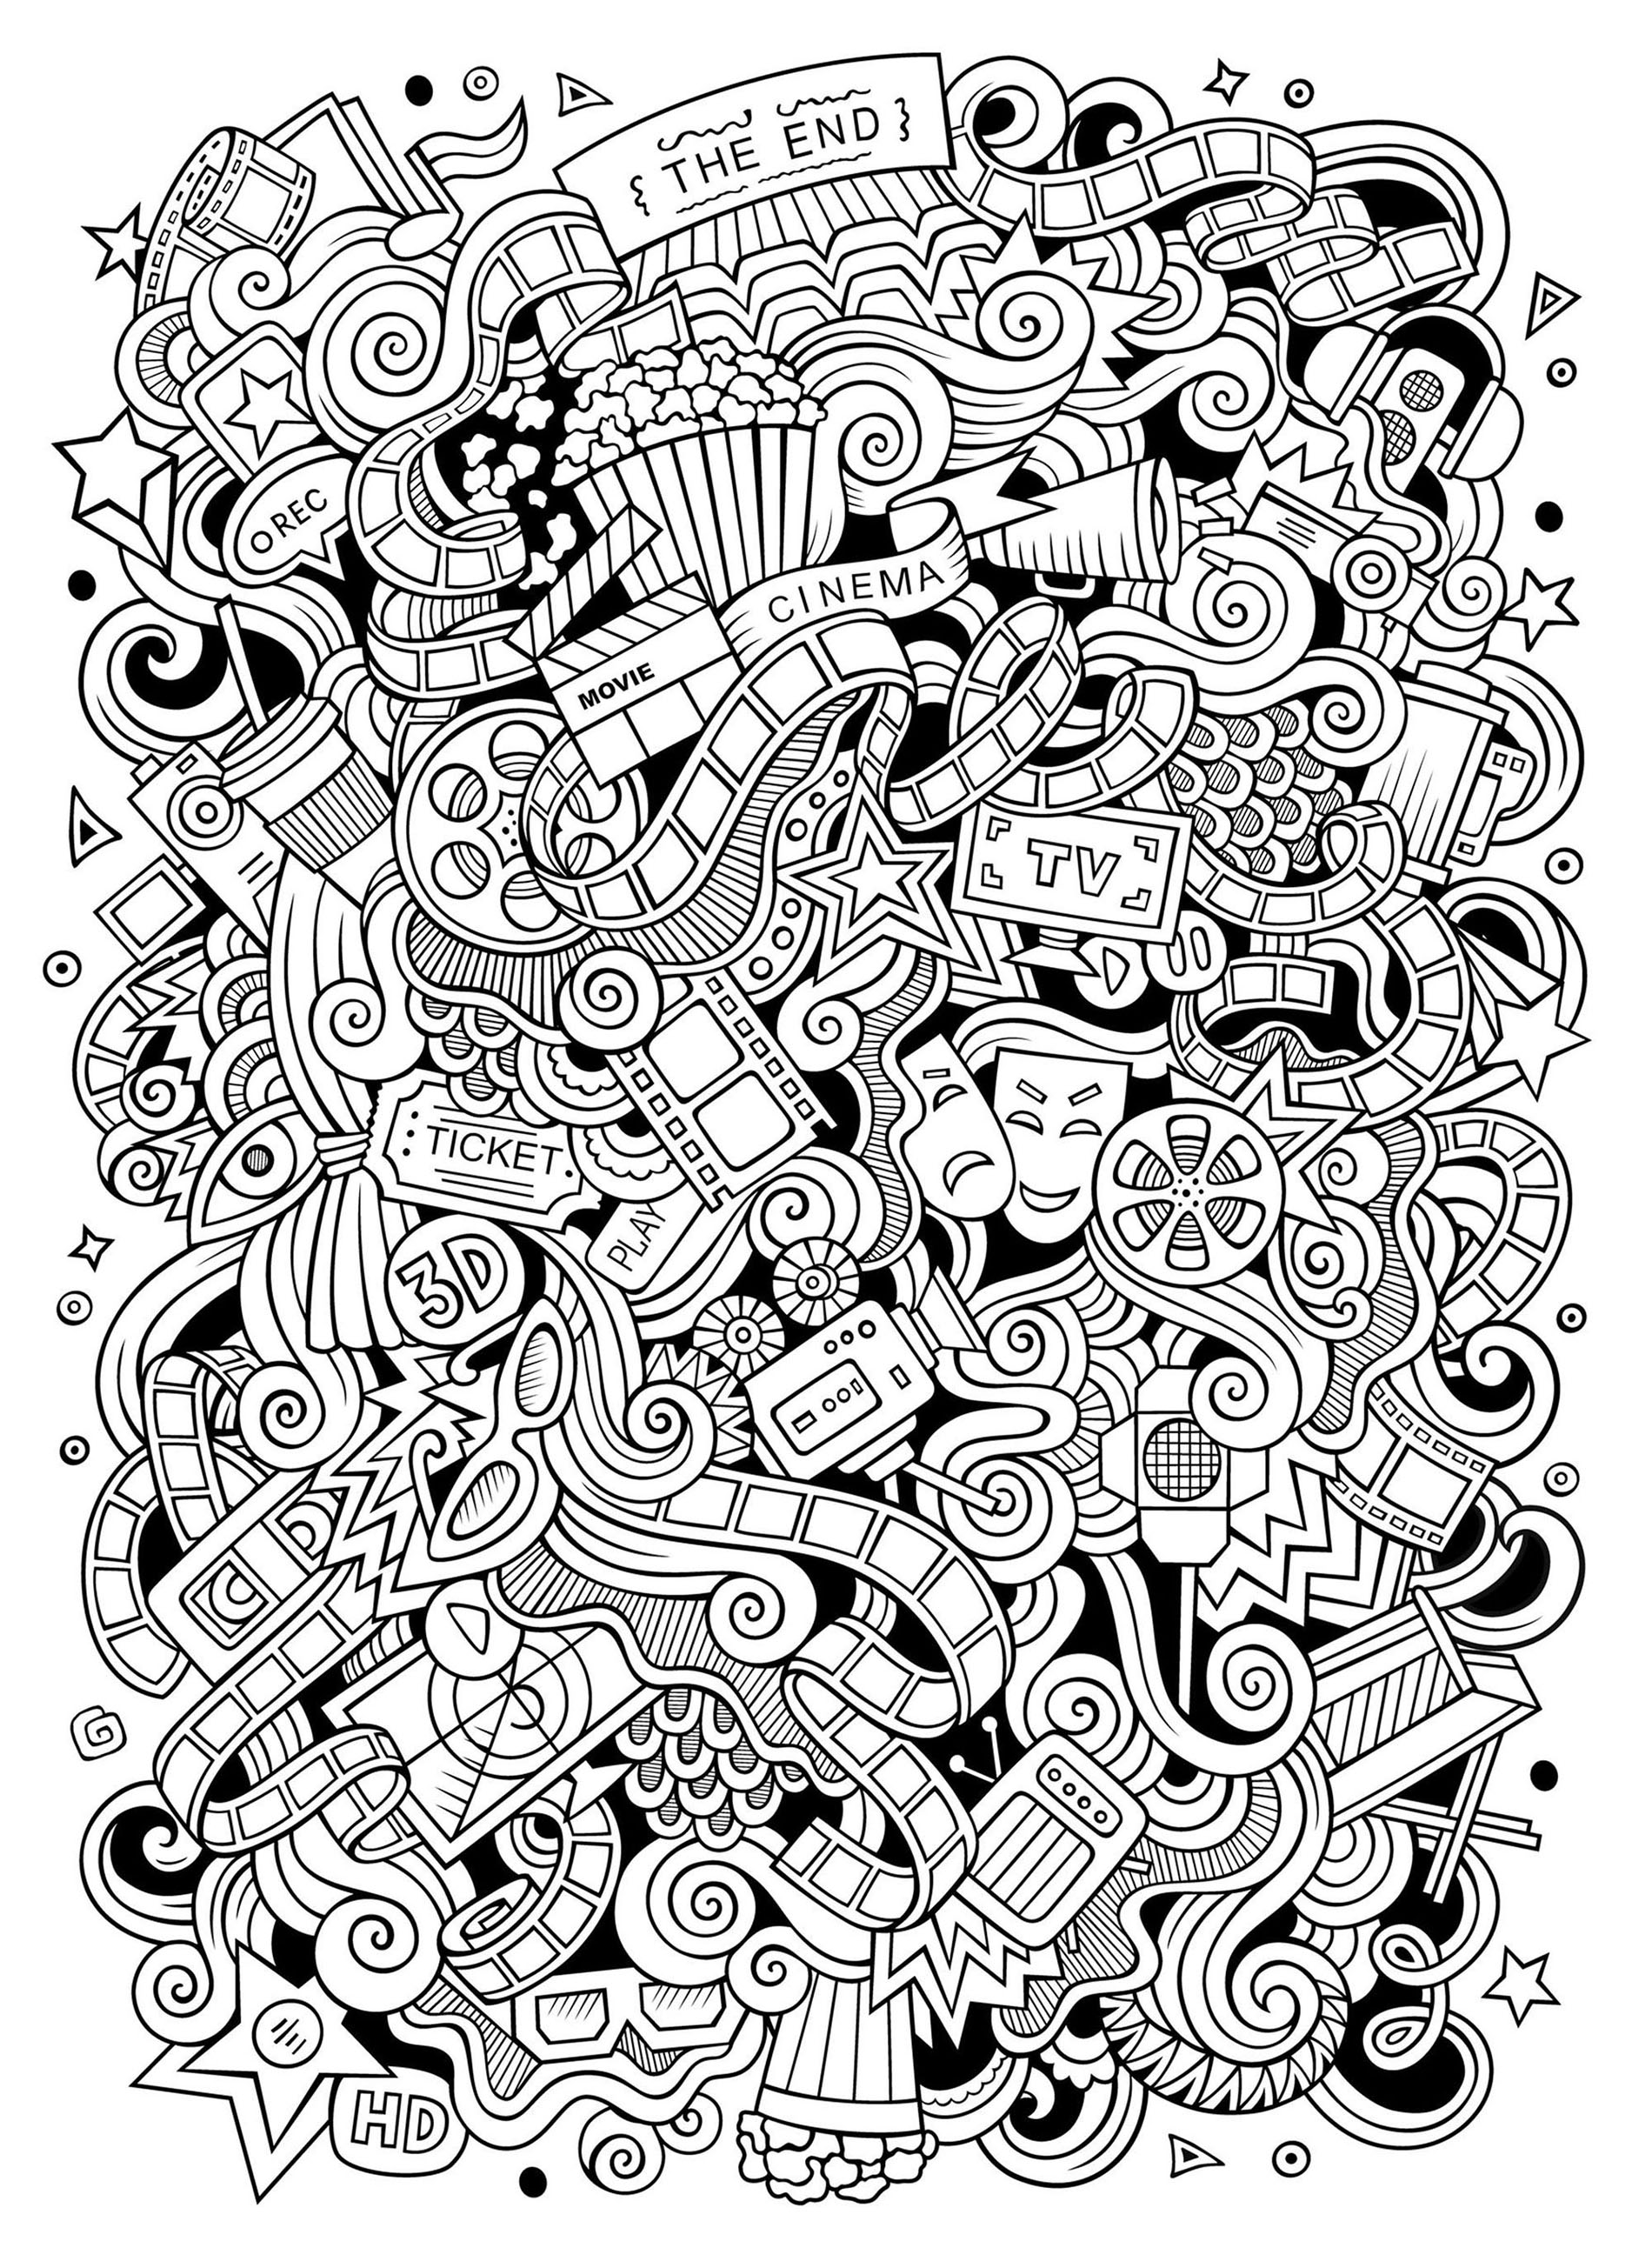 Coloring Pages For Children Doodle Art on mandala designs to print and color